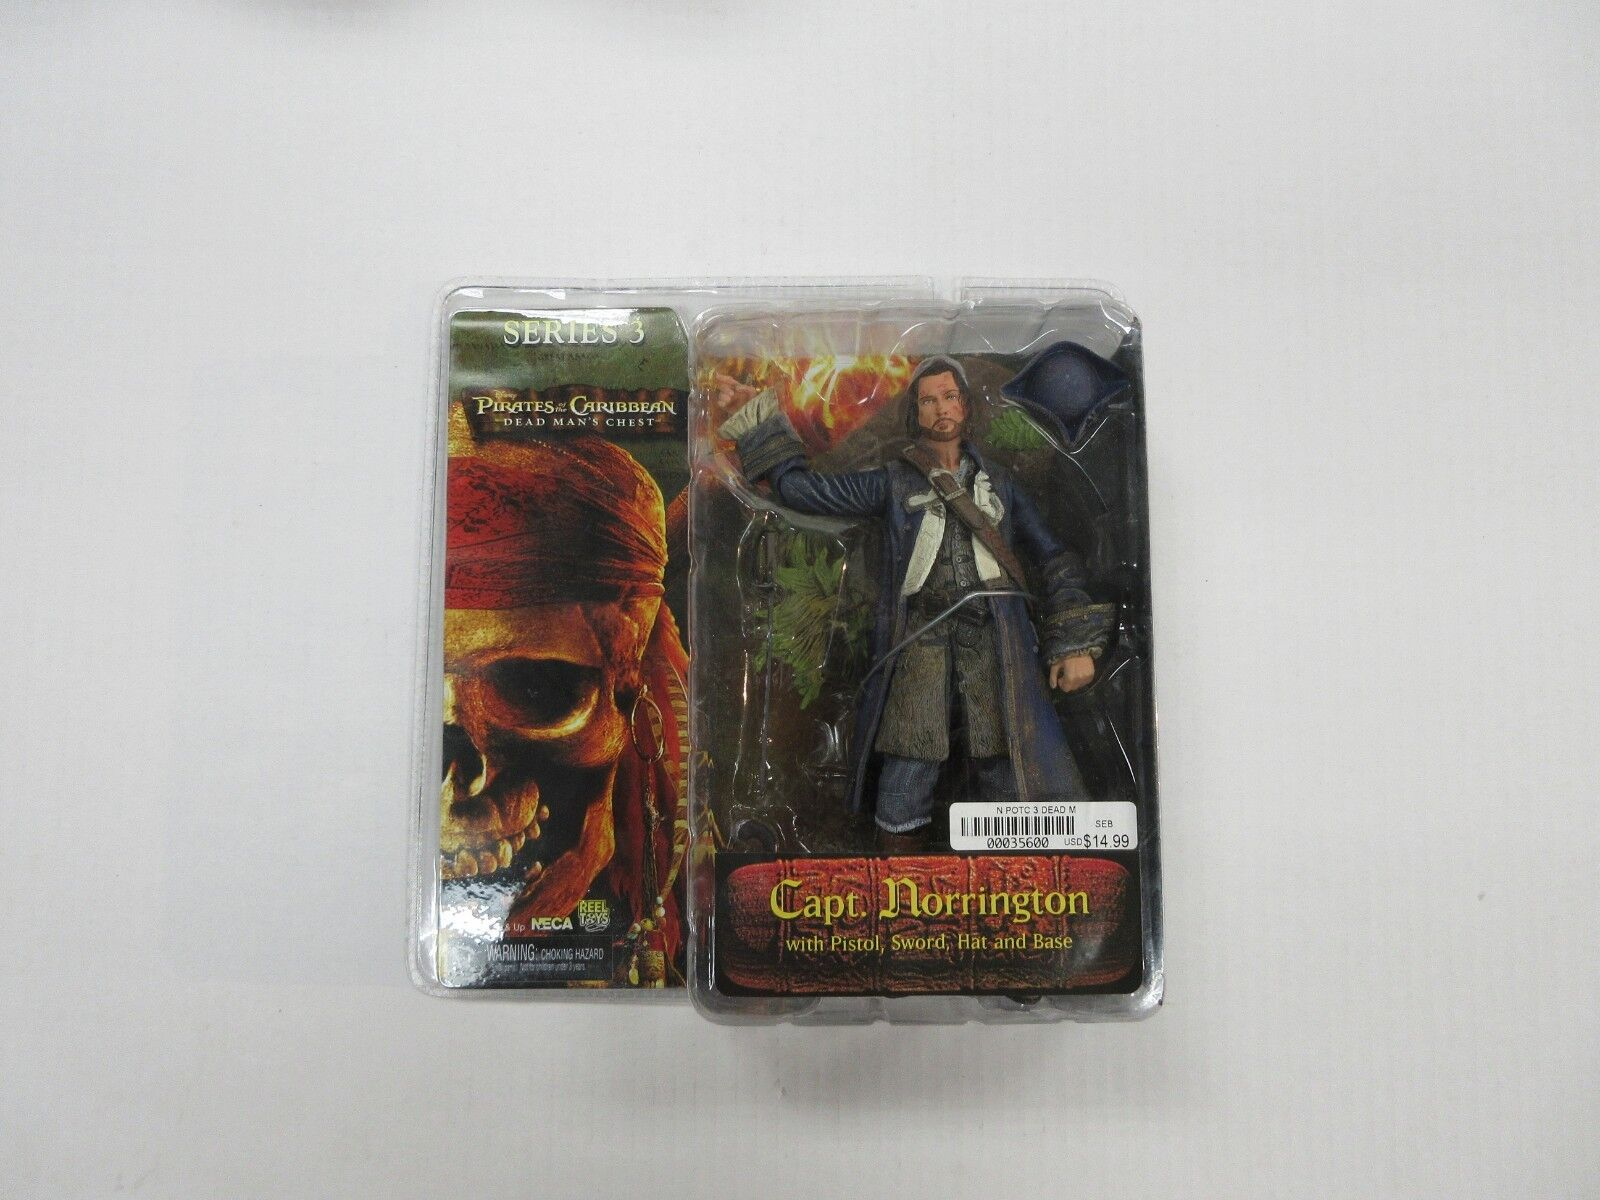 NECA PIRATES OF THE CARIBBEAN SERIES 3 CAPTAIN NORRINGTON FIGURE FACTORY SEALED